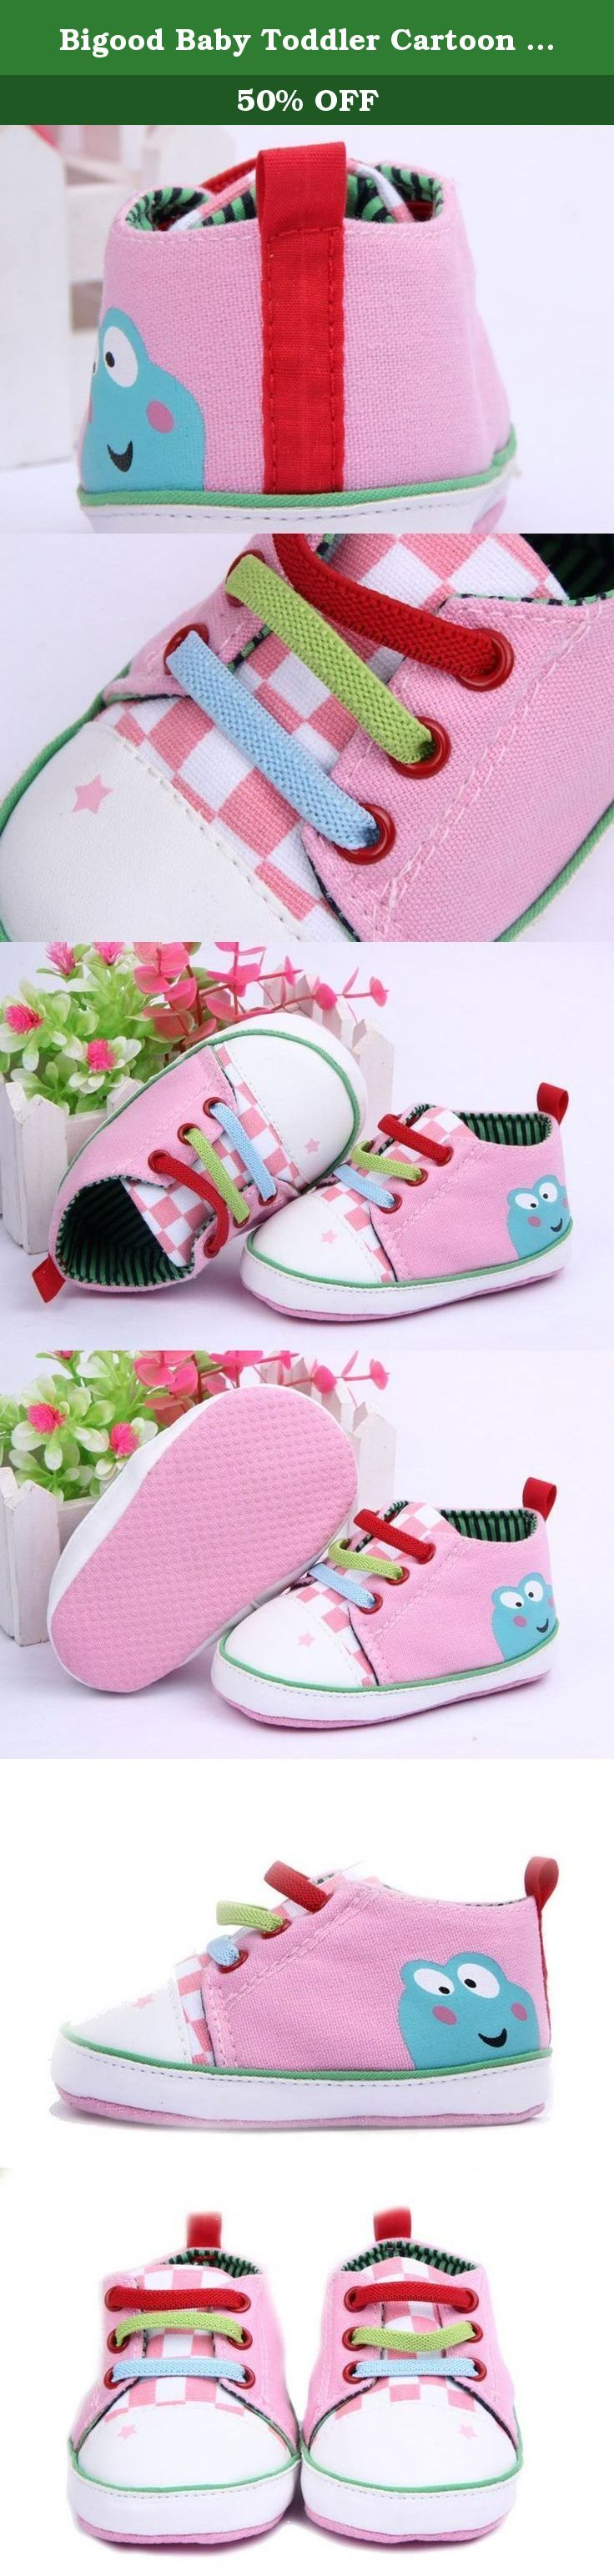 Bigood Baby Toddler Cartoon Frog Anti-Slip Shoes First Walker Sneakers 13cm Pink. Material : Canvas Size:Sole Length 13cm Color:Pink These shoes are made from soft material and allows little feet to grow freely. They are soft and perfect for your precious one to learn how to walk, also has an anti-slip outer sole. These shoes fit perfectly the shape of your child's feet and wrap gentle. Great gift for your baby or your friend's. Color may vary slightly due to the color calibration of each...